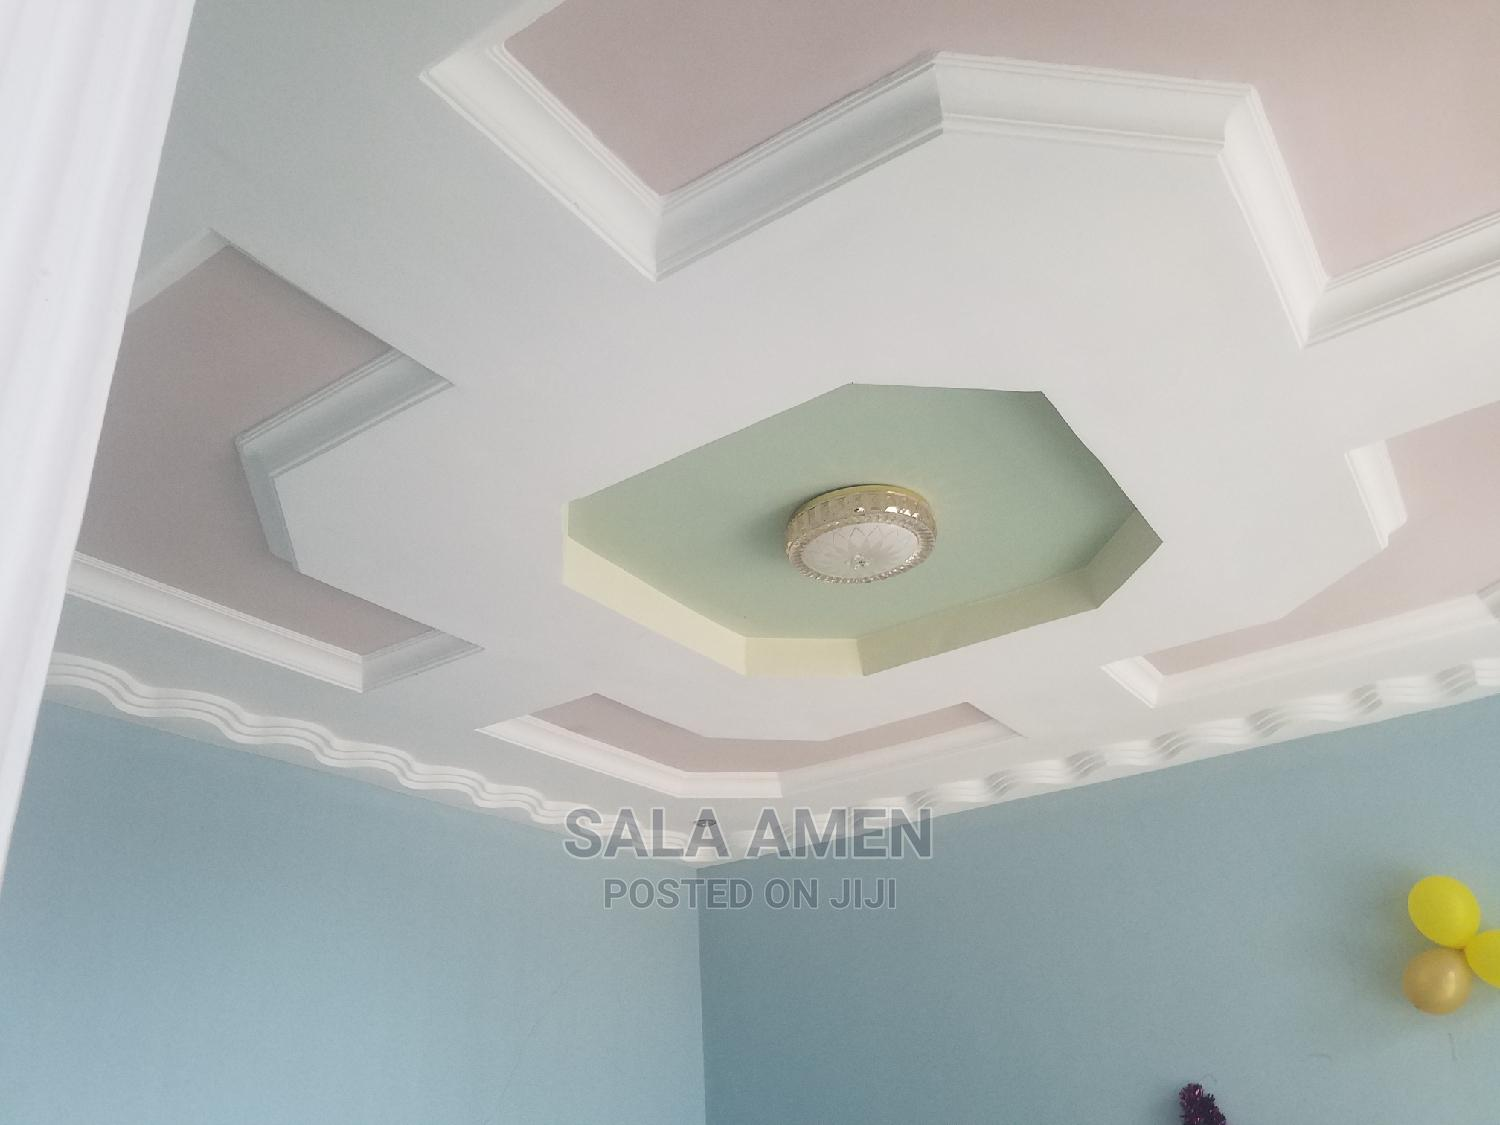 Archive: Furnished 5bdrm House in ዱከም, East Shewa for Sale